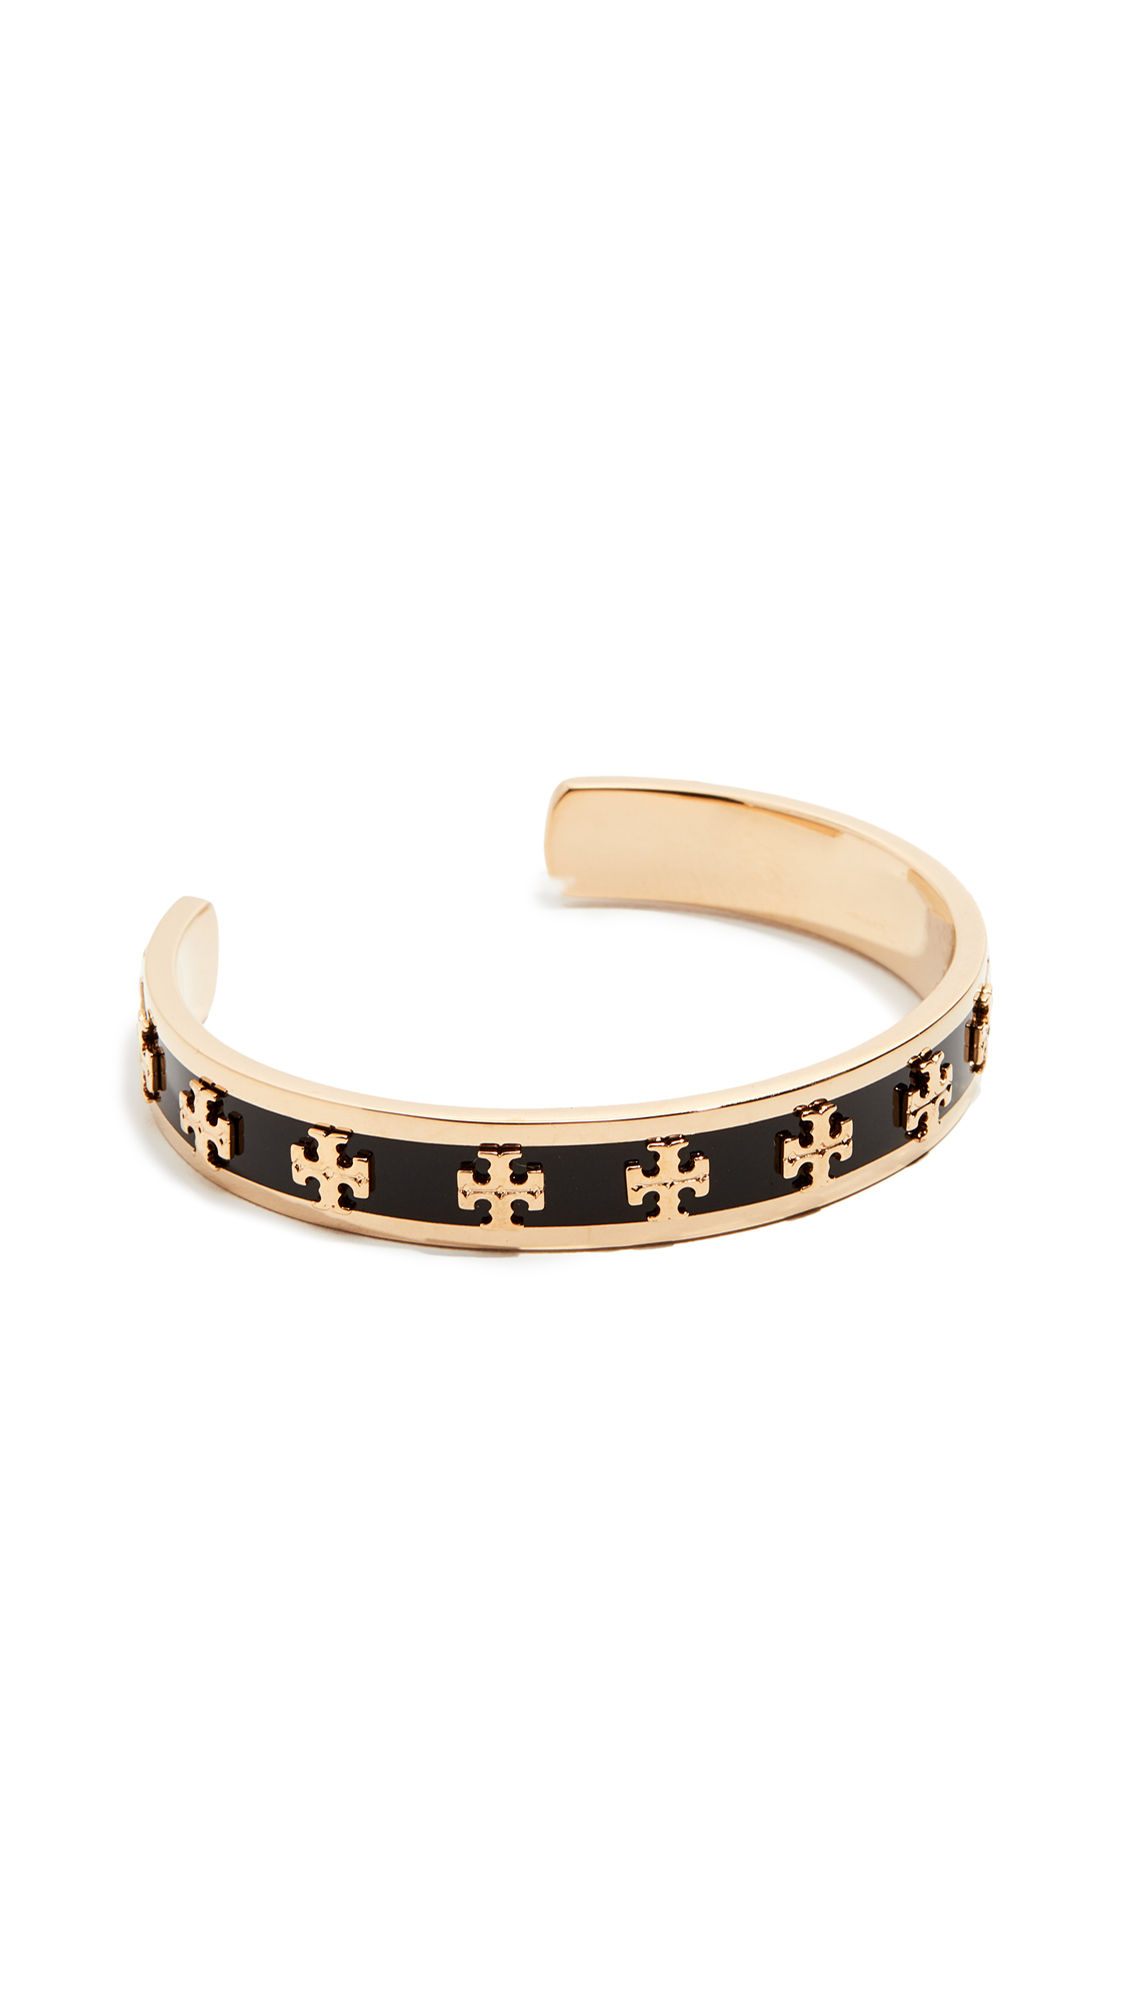 Tory Burch Enamel Raised Logo Cuff Bracelet - Black/Tory Gold